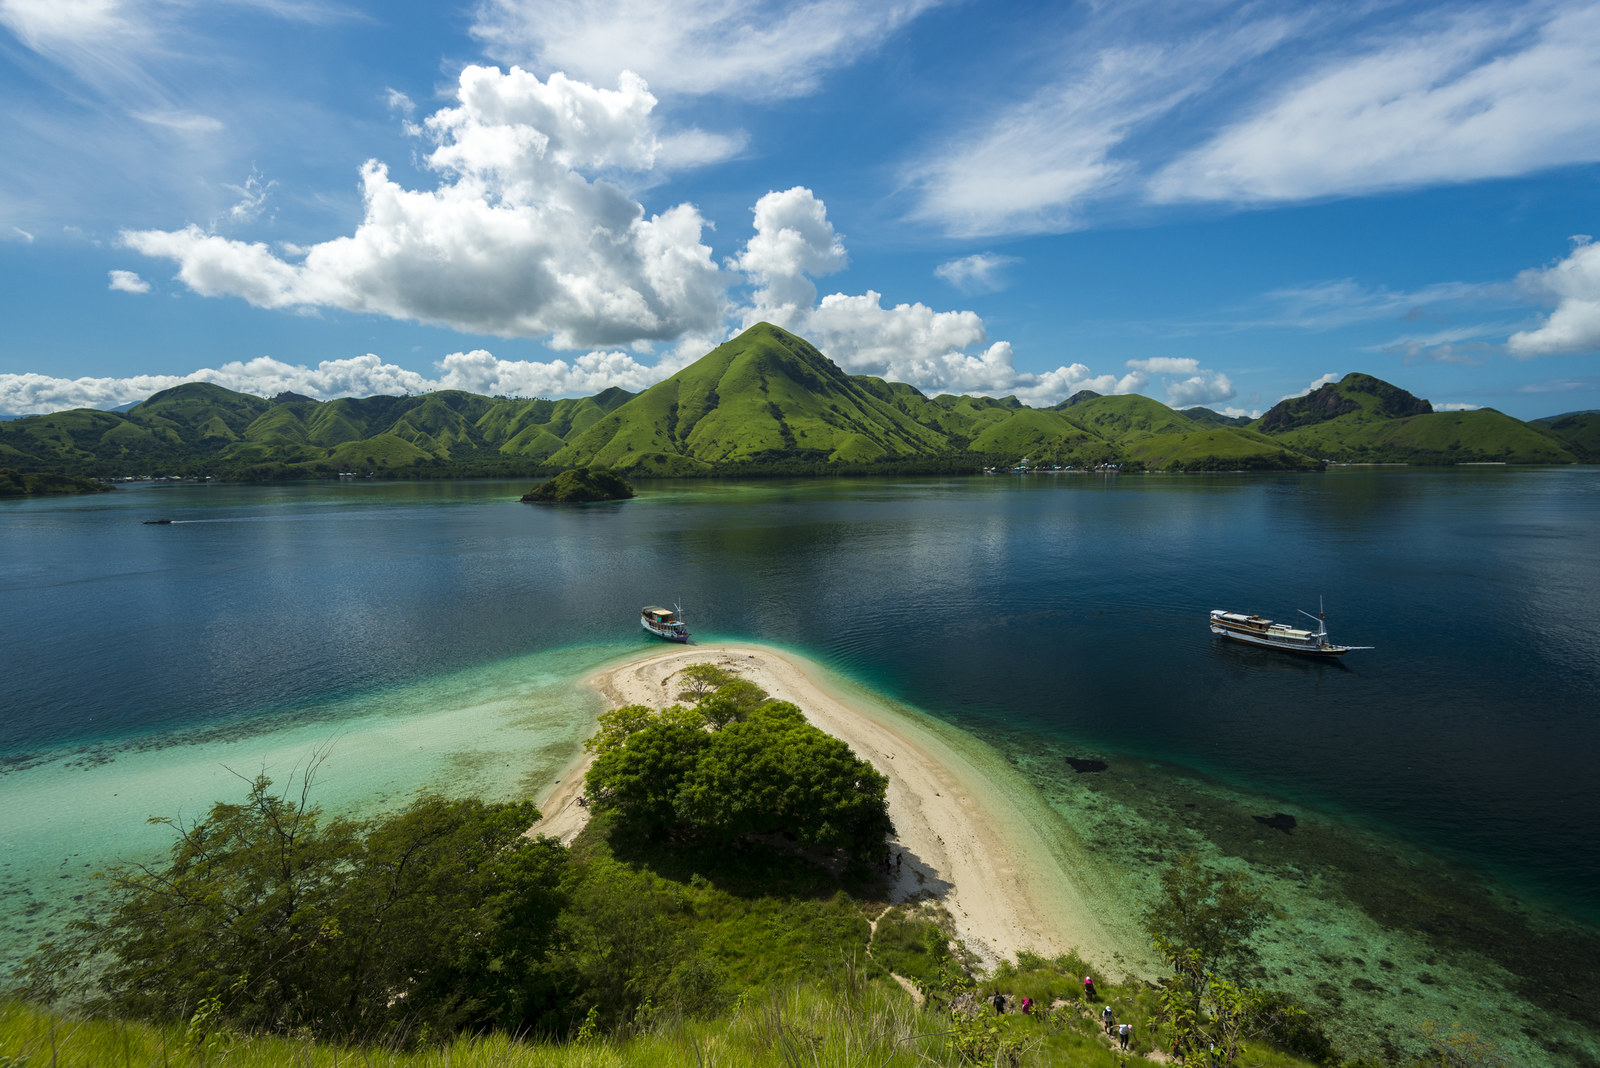 Indonesia: Komodo National Park -  This volcanic island may look tranquil, but it's actually inhabited by thousands of giant lizards (aka Komodo Dragons), which exist no where else in the world.